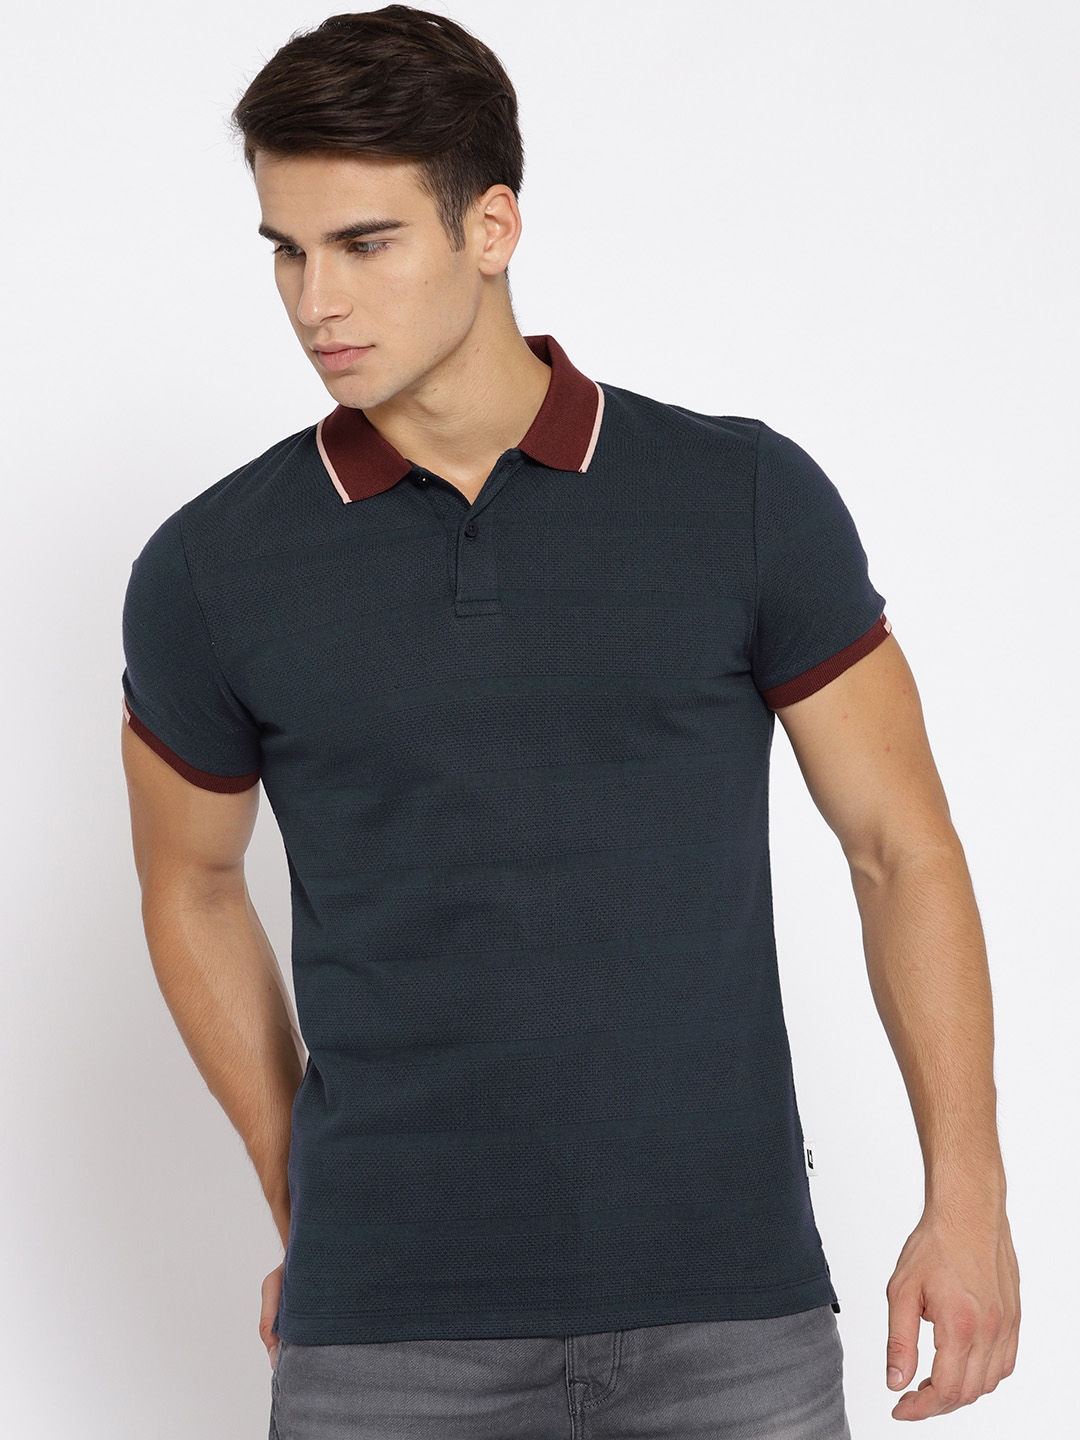 c6929f0e8 Buy Jack & Jones Men Navy Blue Self Striped Polo Collar T Shirt ...